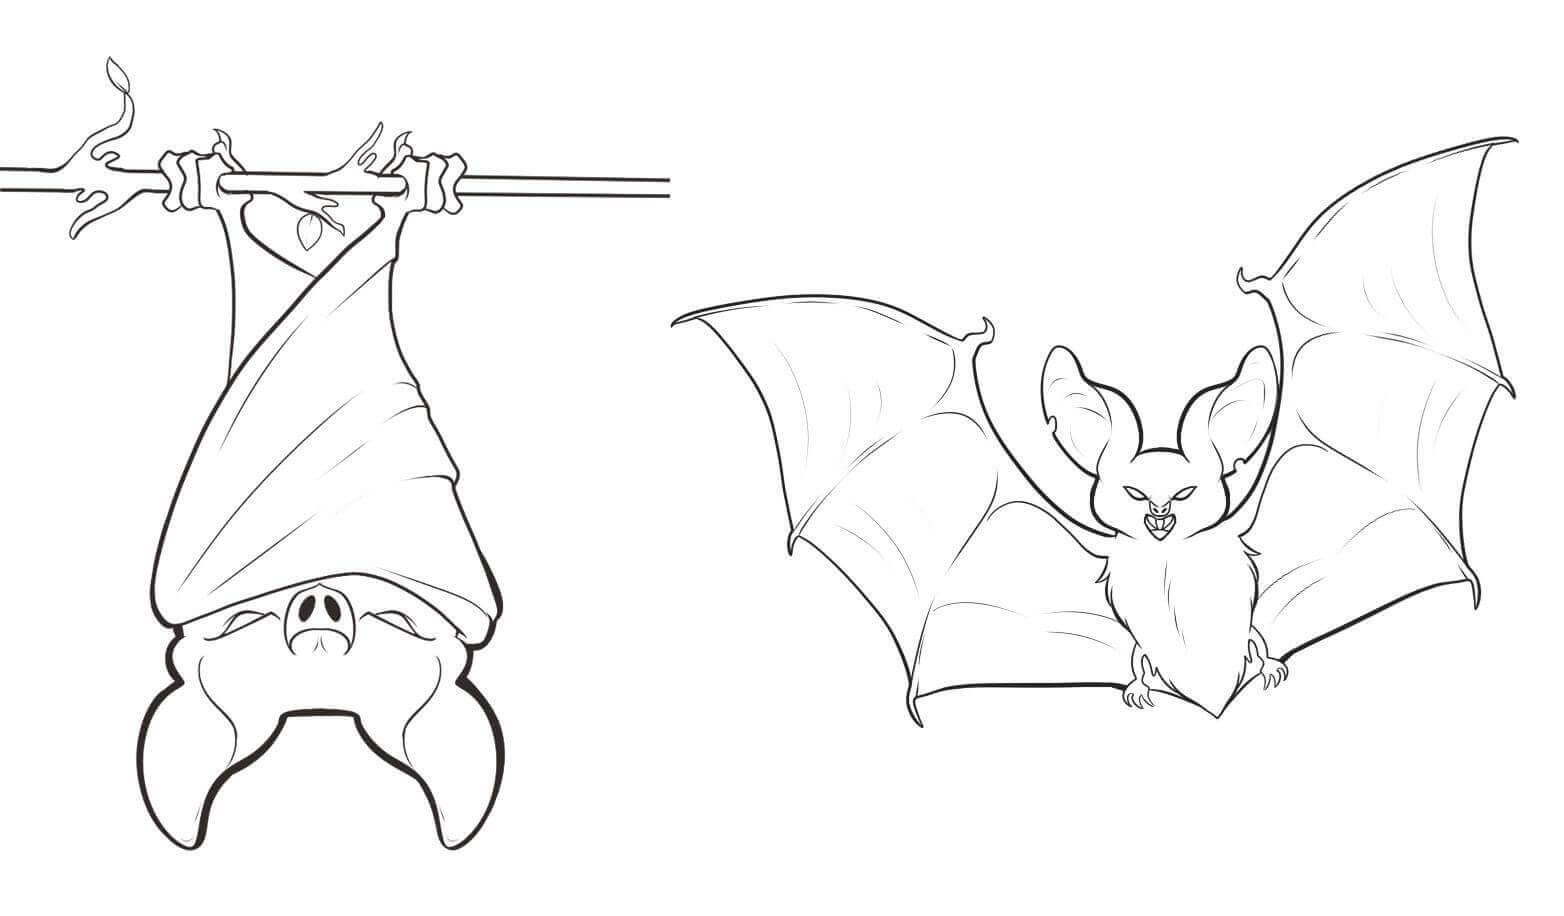 Bat Hanging Upside Down Coloring Page Bat Coloring Pages Bat